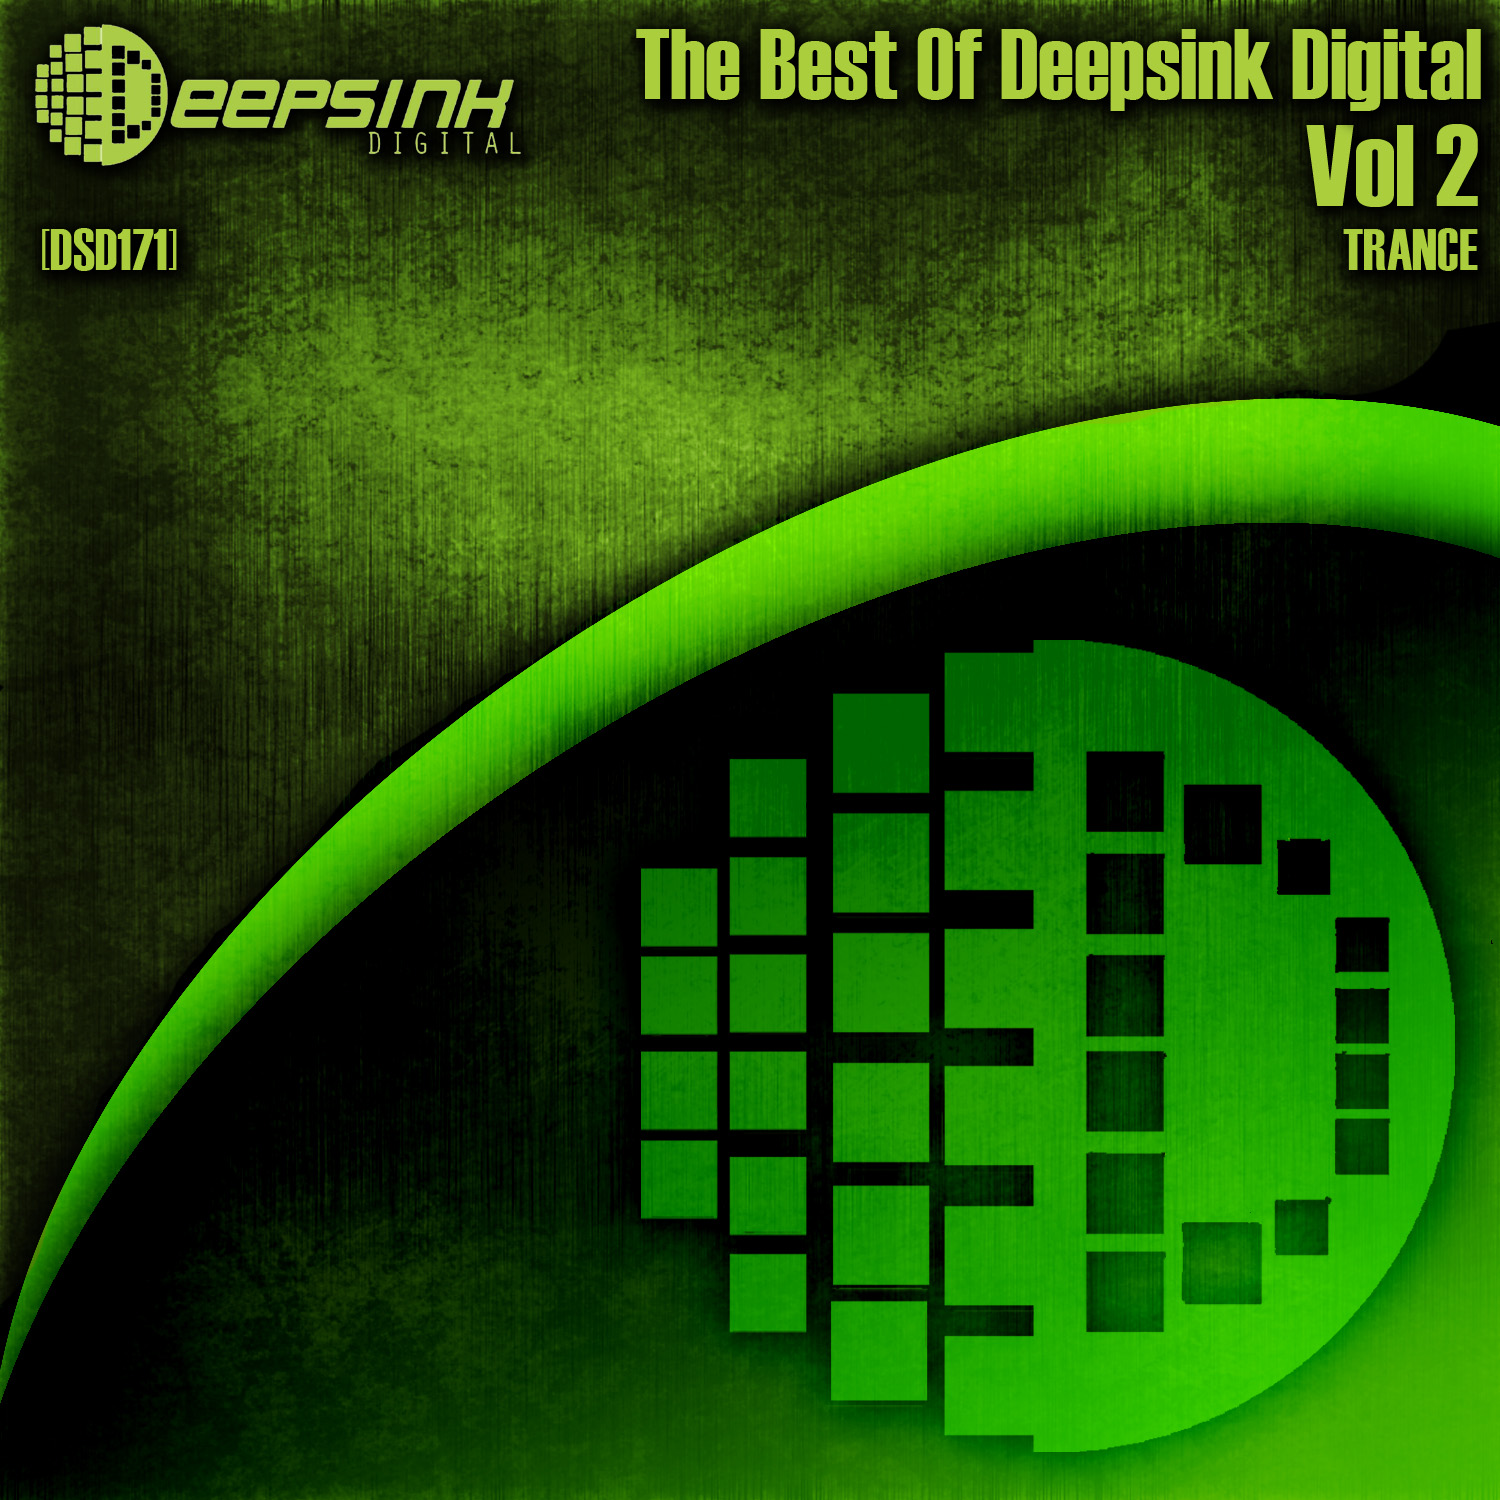 The Best Of Deepsink Digital Vol 2